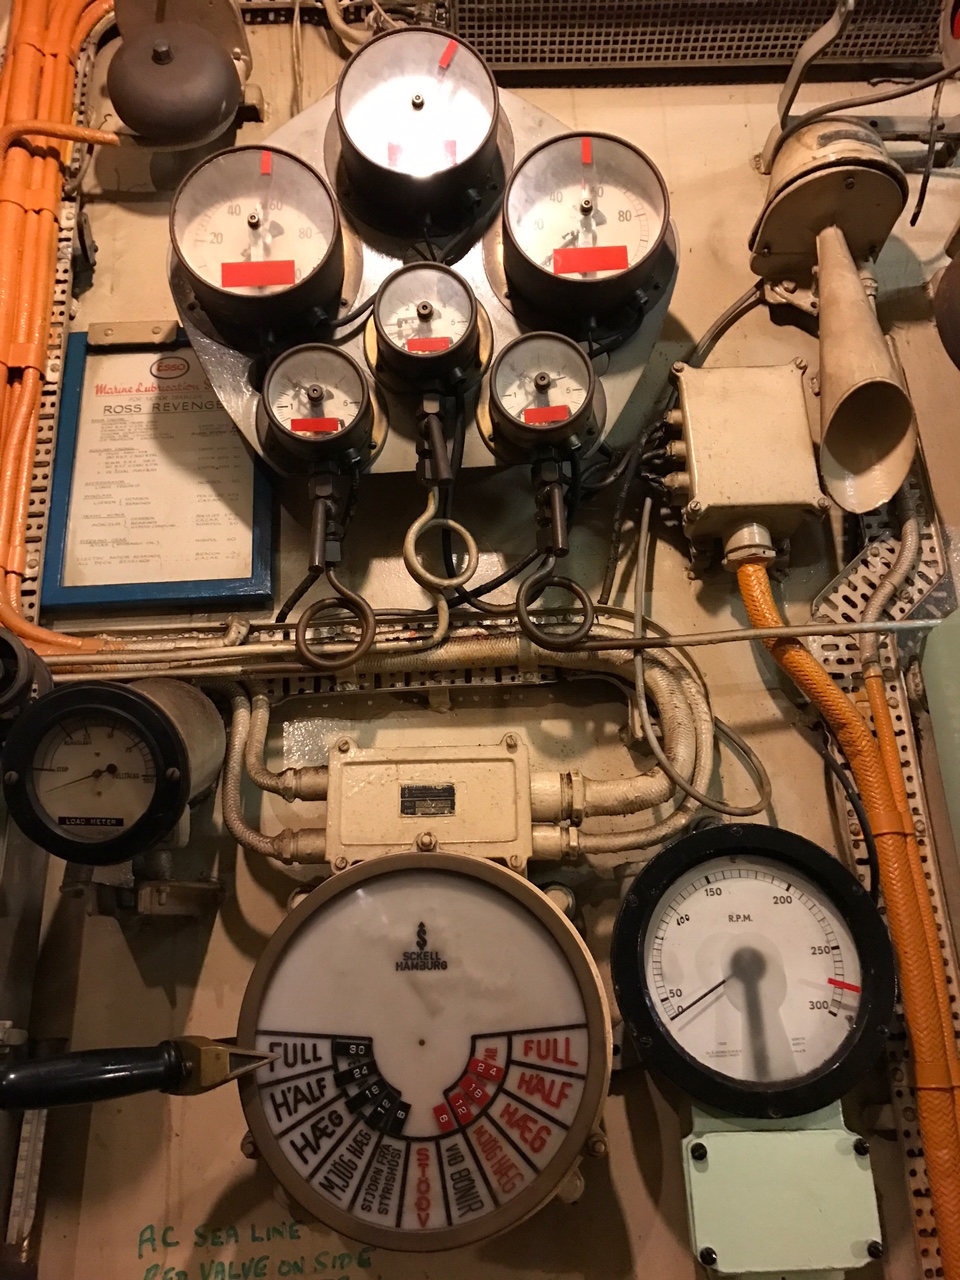 Ross Revenge Engine Room Telegraph